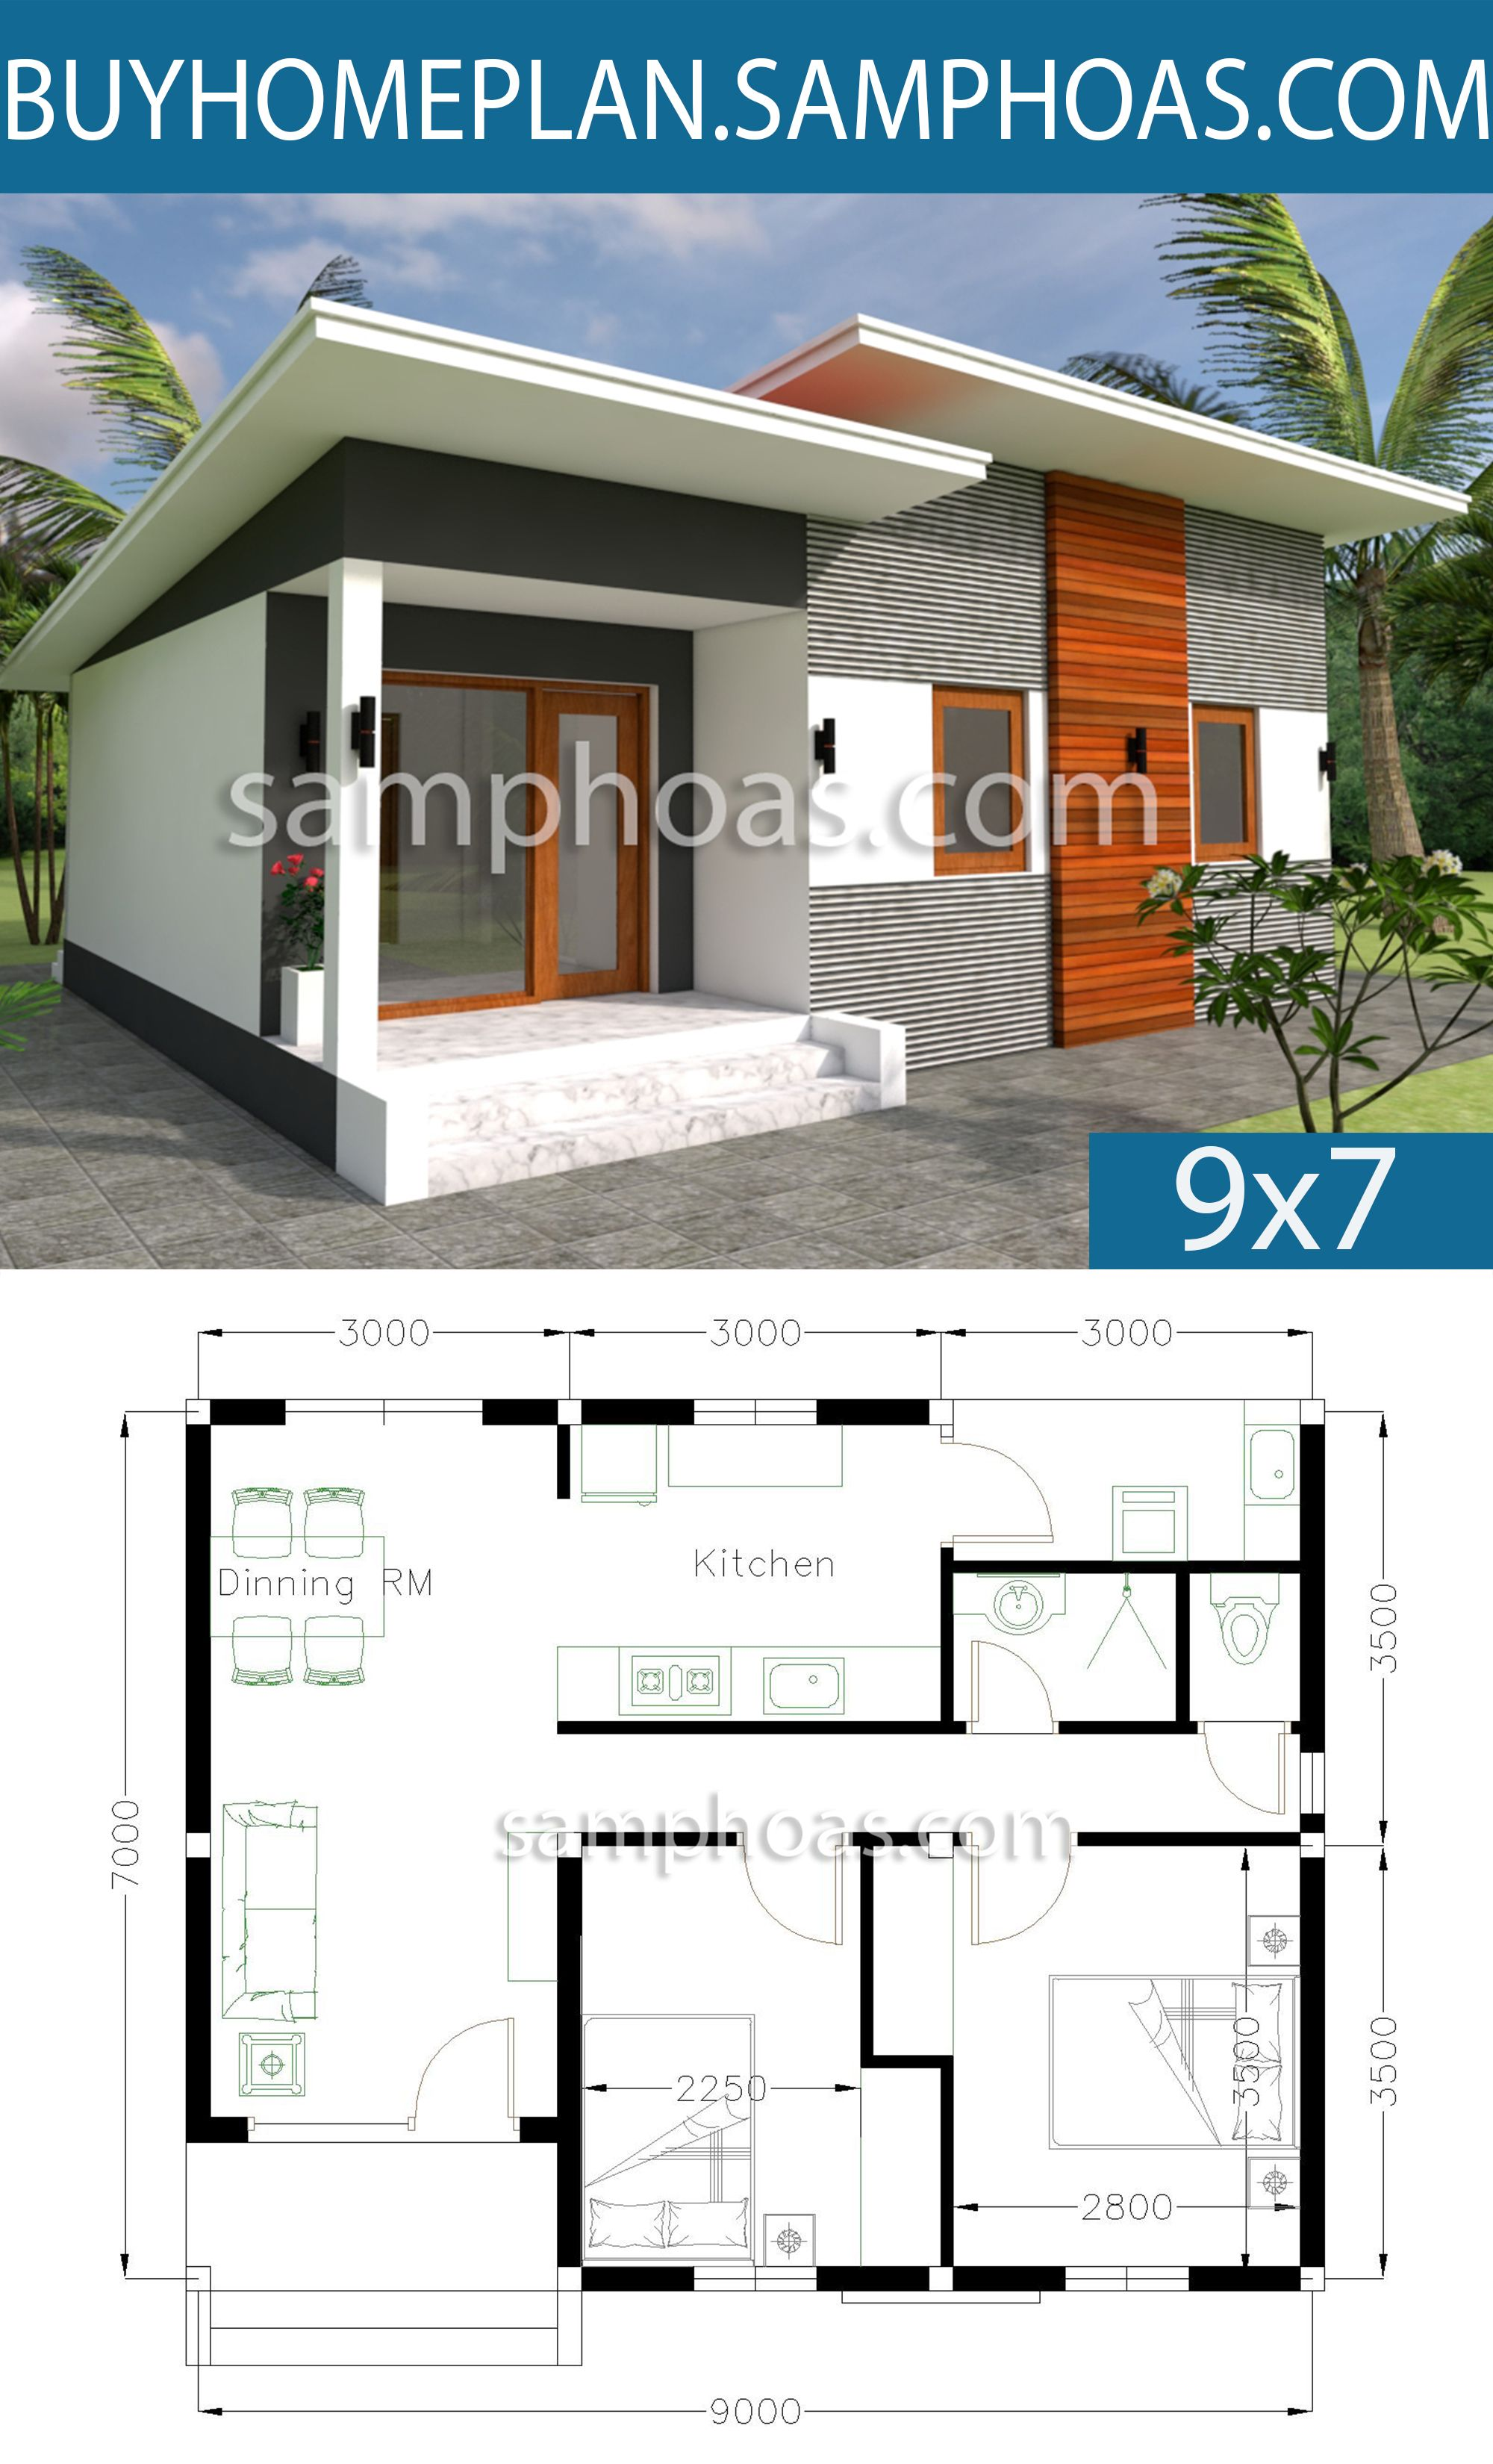 House Plans 9x7m With 2 Bedrooms House Plans Free Downloads House Roof Design House Plans Small House Plans